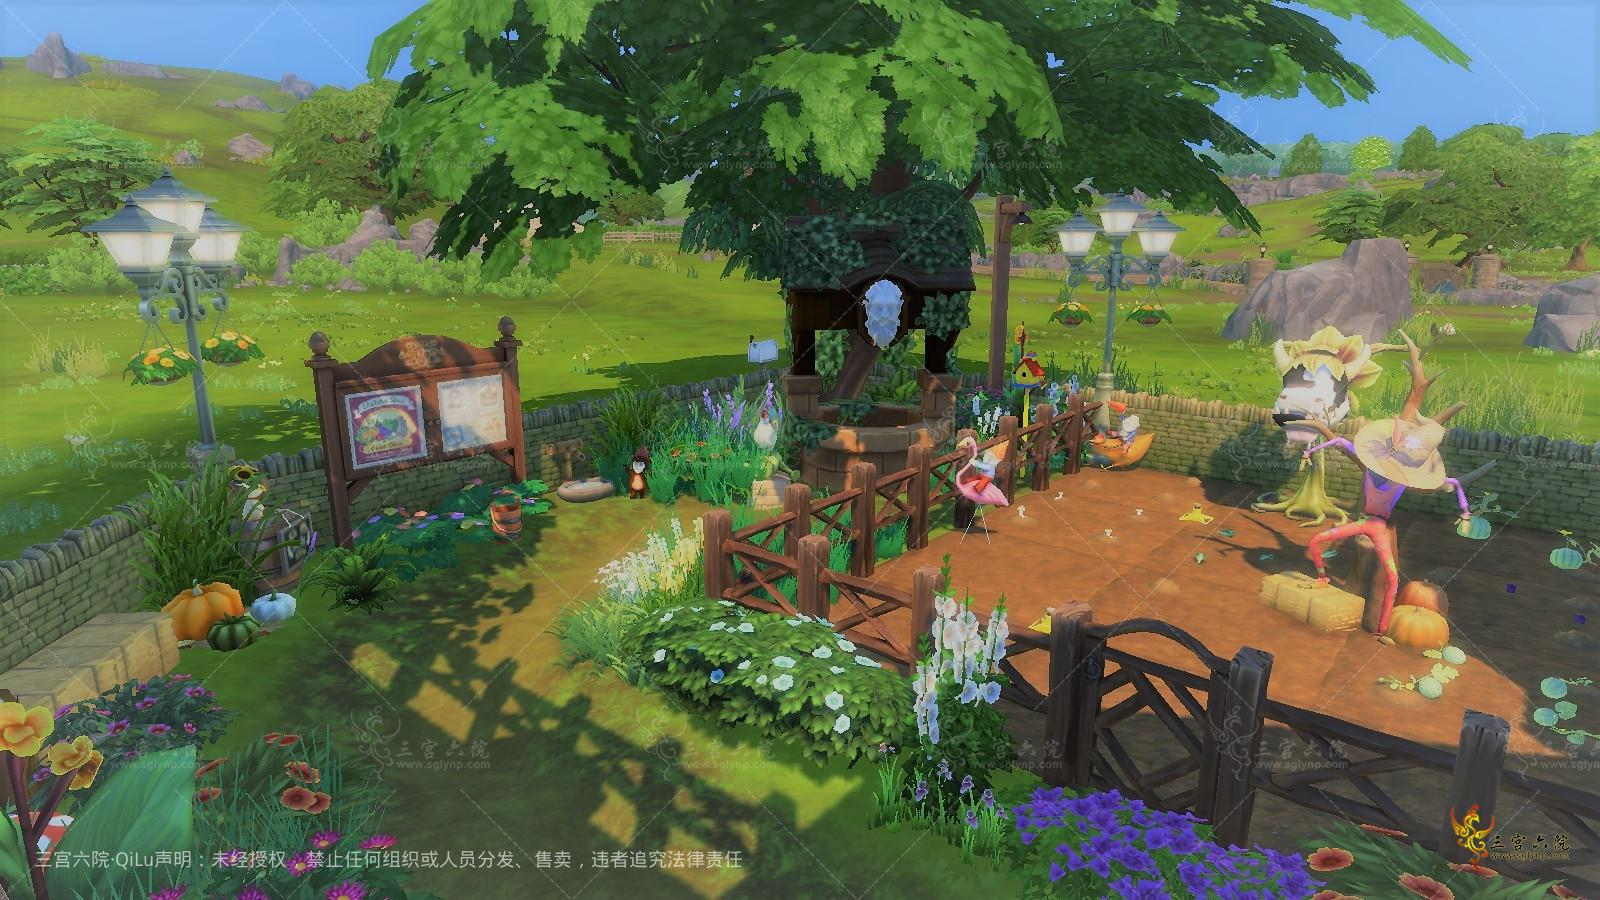 The Sims 4 2021_8_21 17_15_59.png